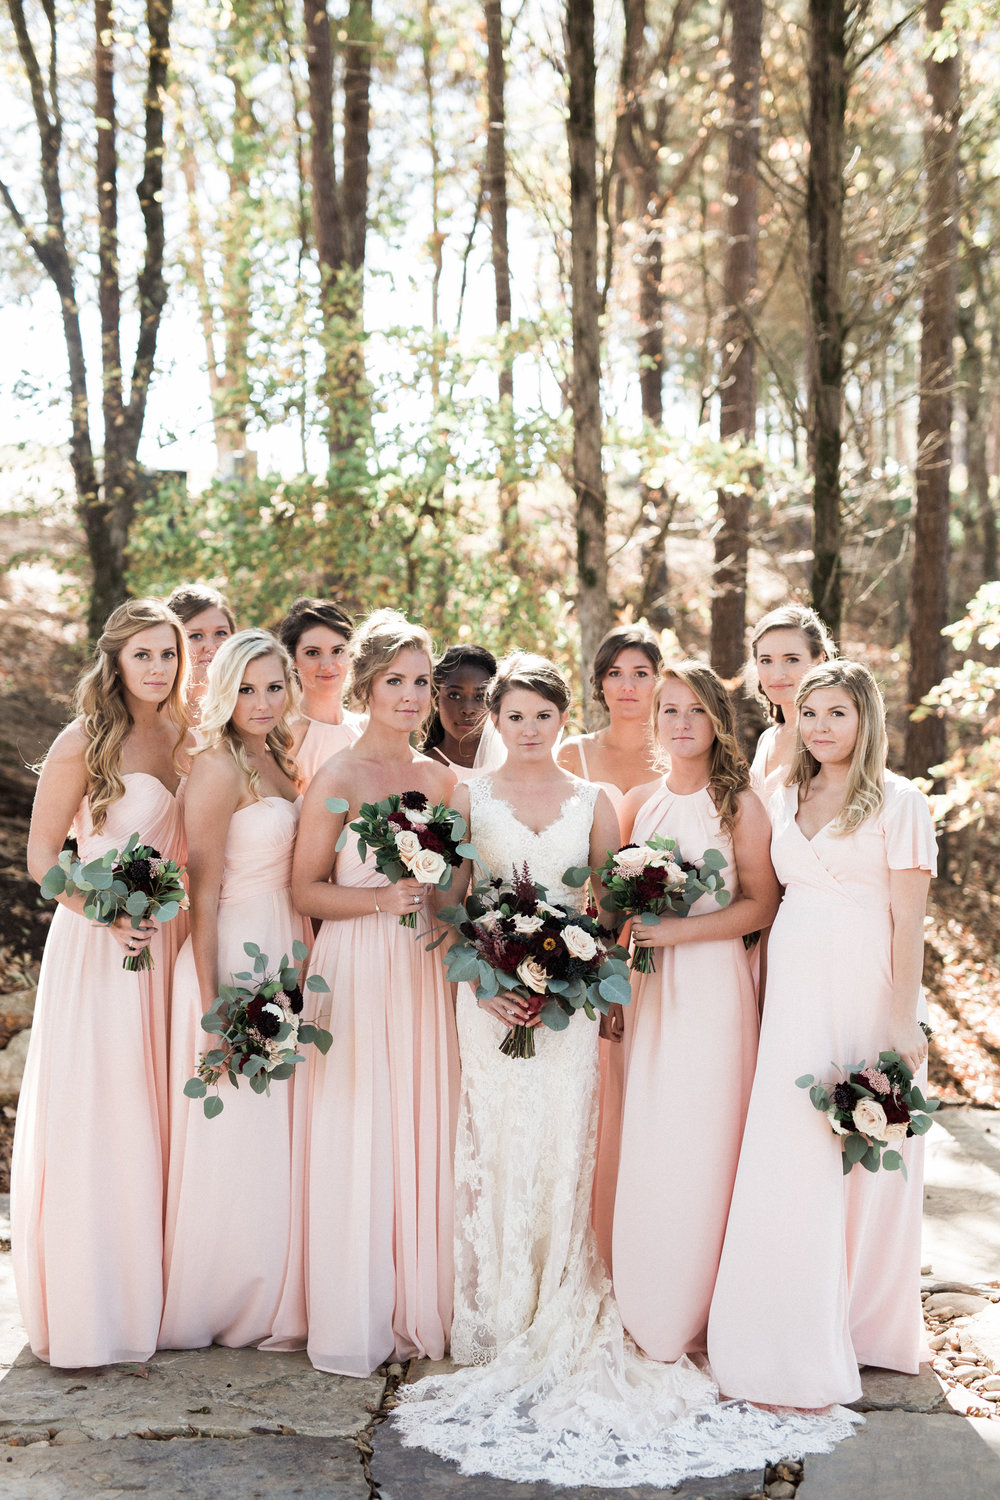 Mikaela Hamilton-Hannah & Joe- bridal party-2.jpg